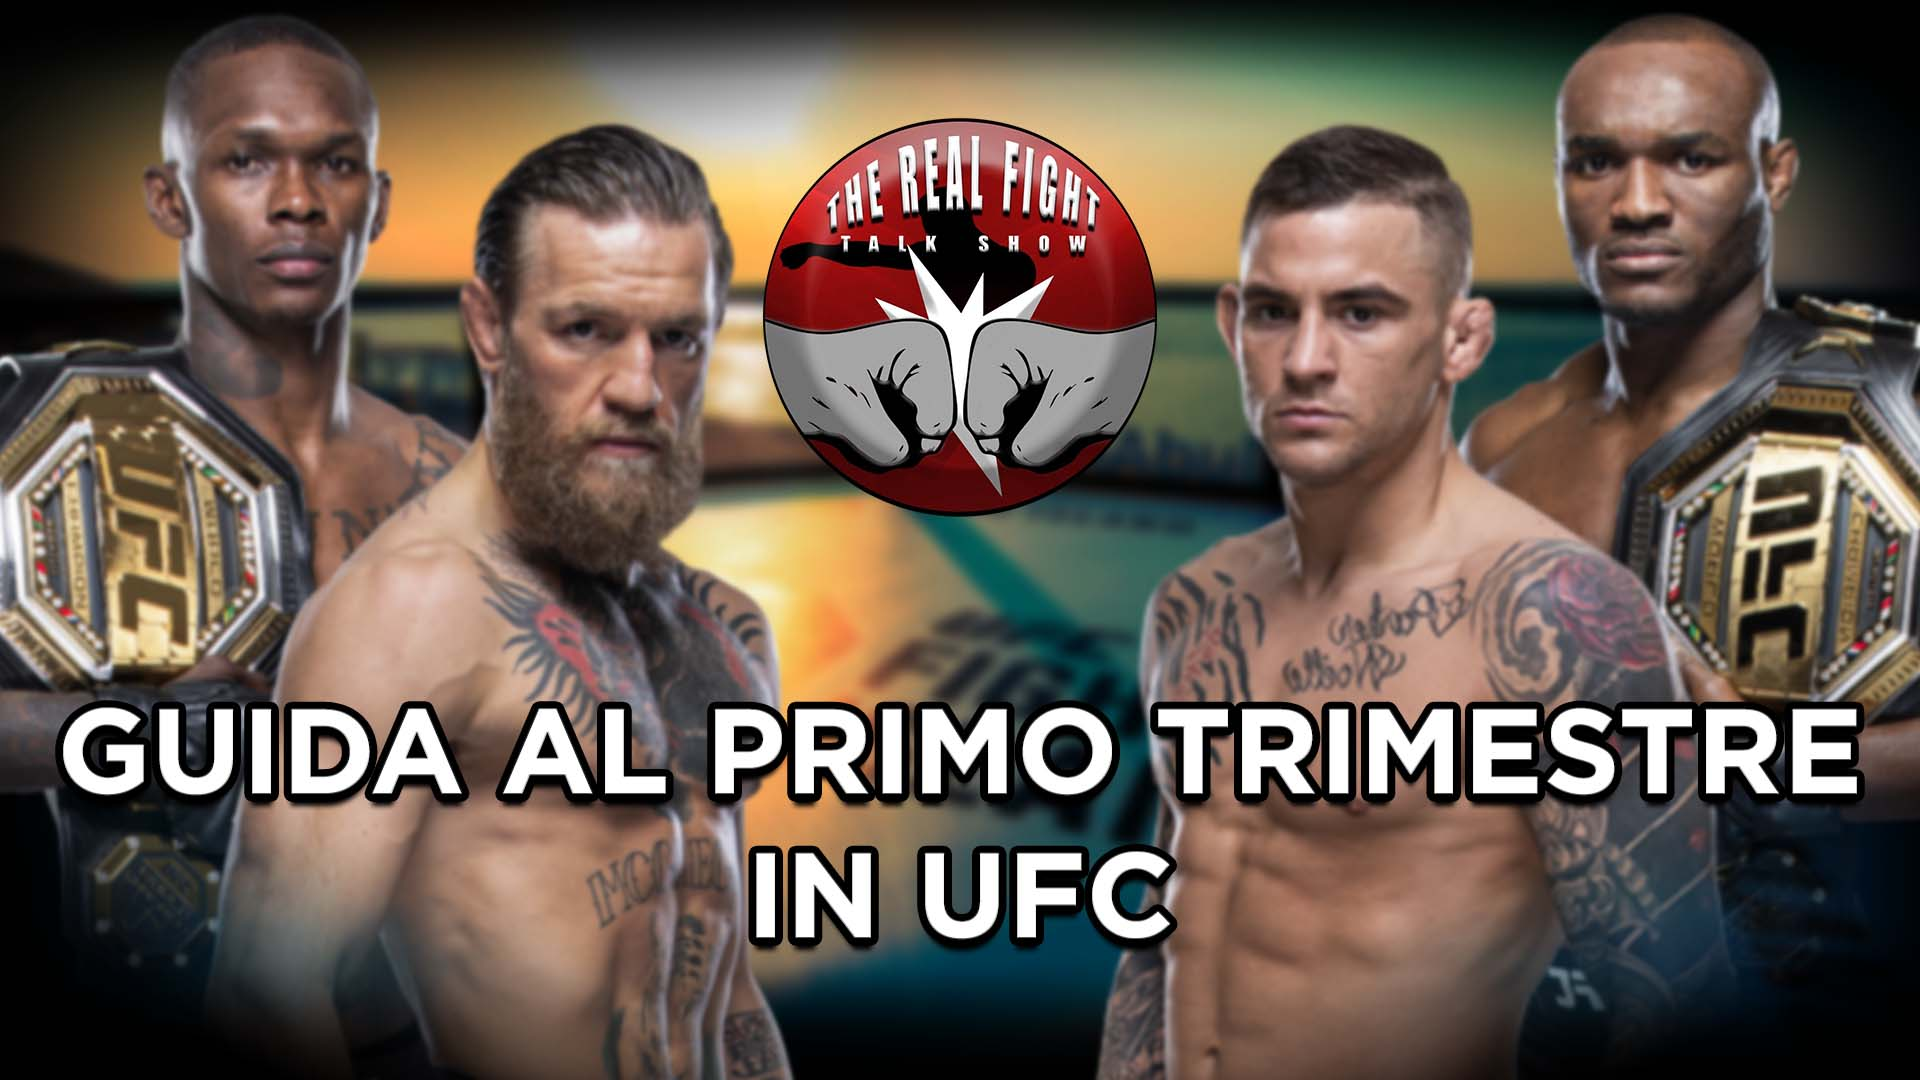 UFC: istruzioni per l'uso del primo trimestre - The Real FIGHT Talk Show